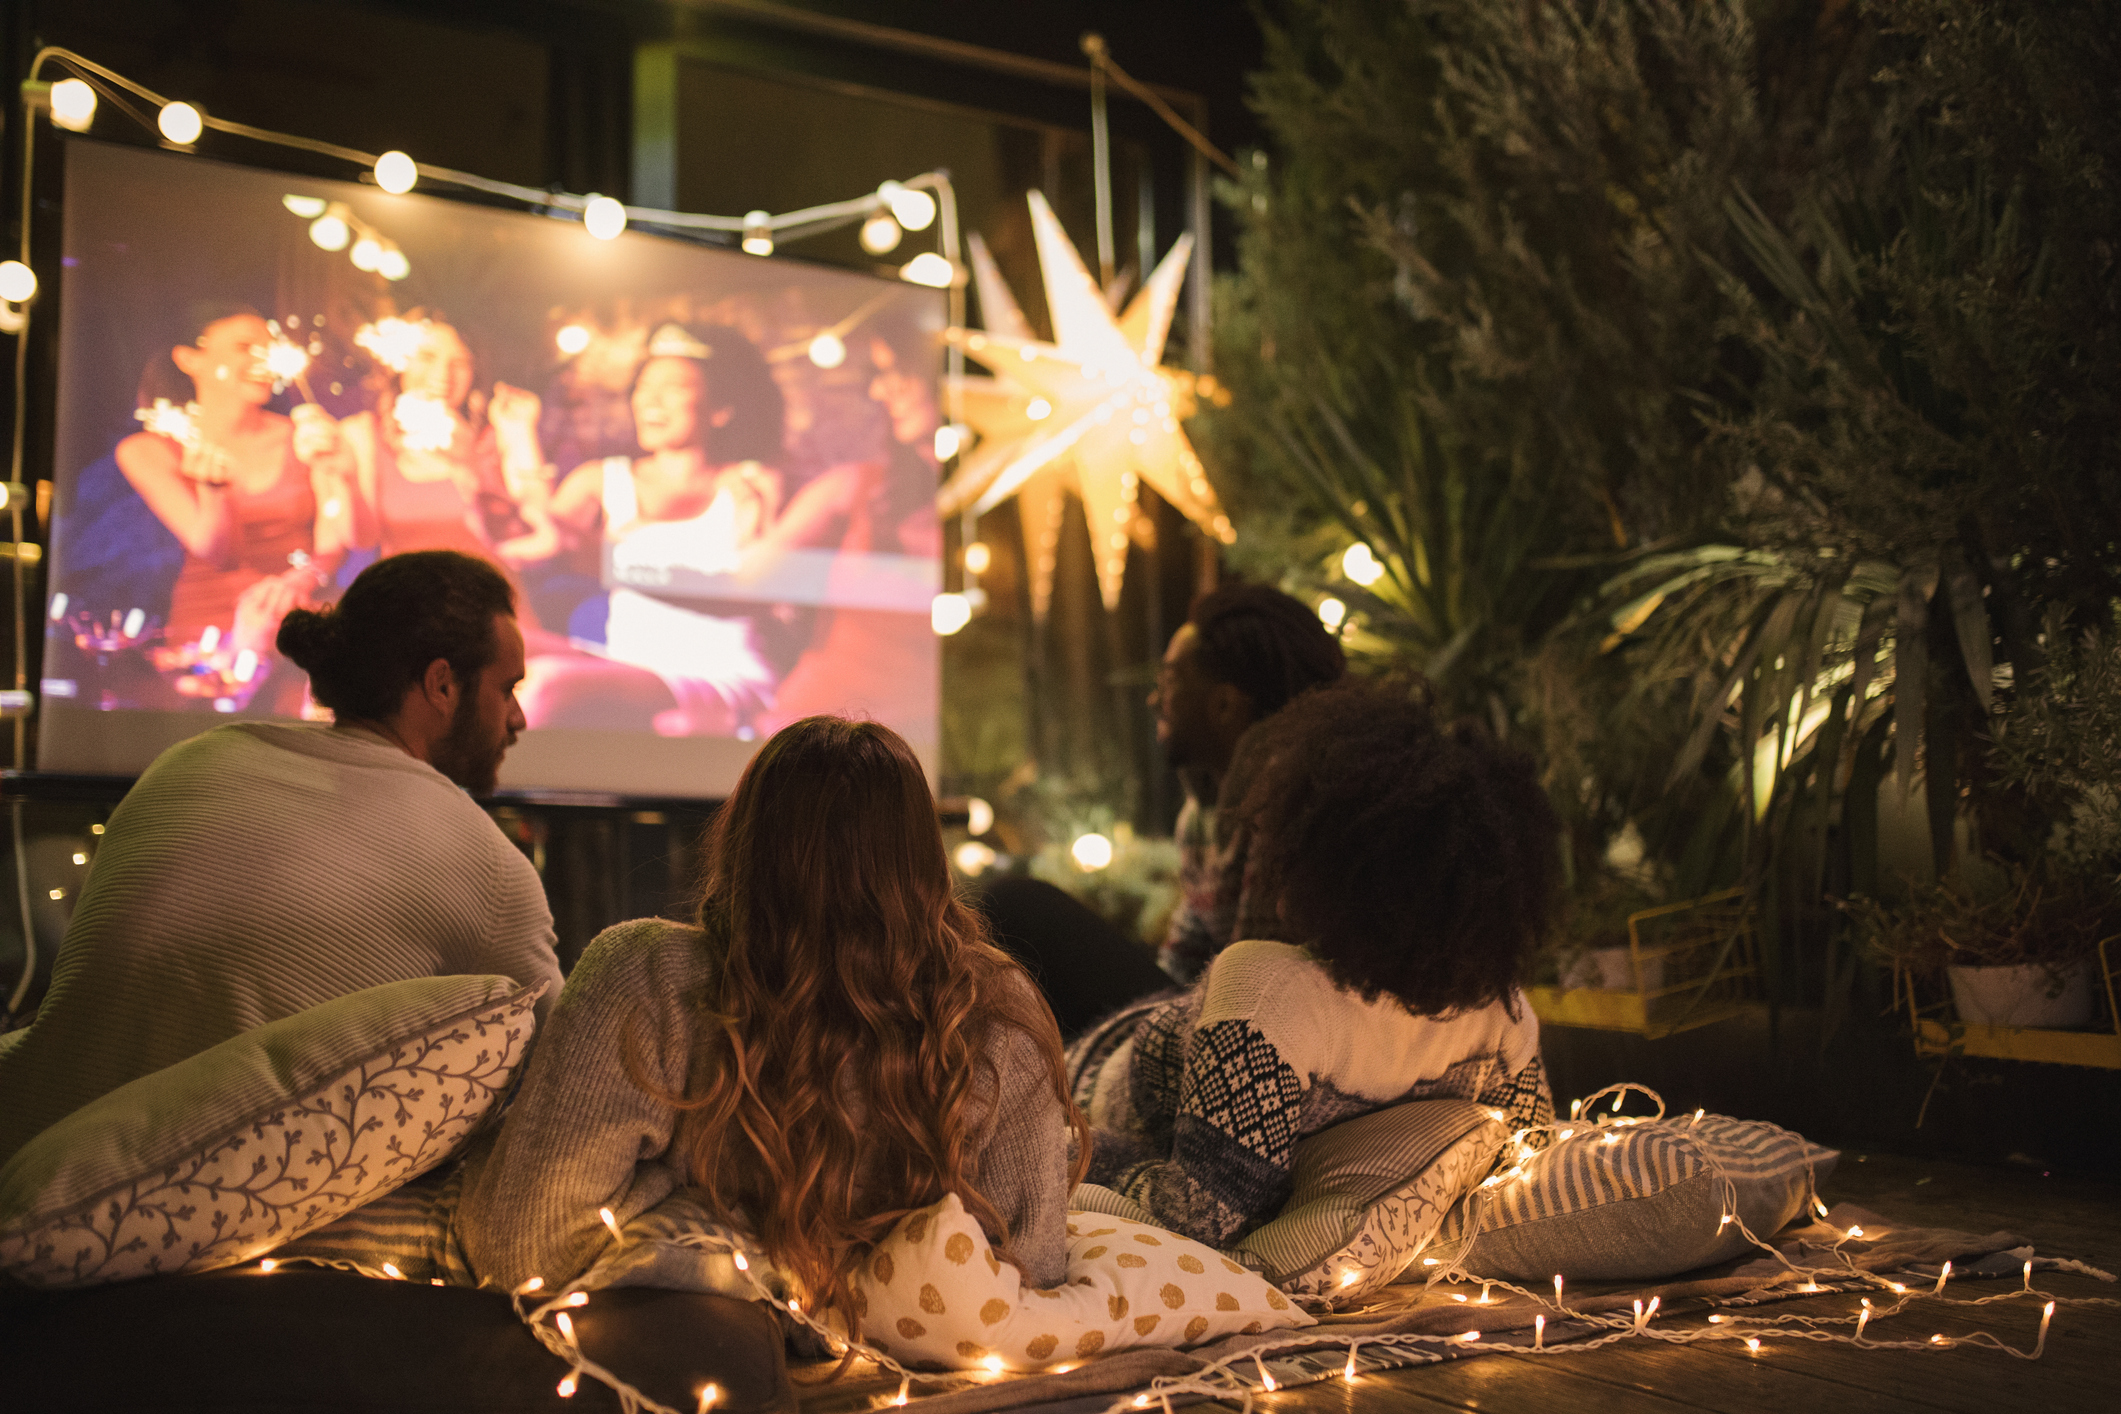 Bring the Family Together for Fall Movie Nights Outside | Duerden's Appliance & Mattress | Salt Lake City, UT